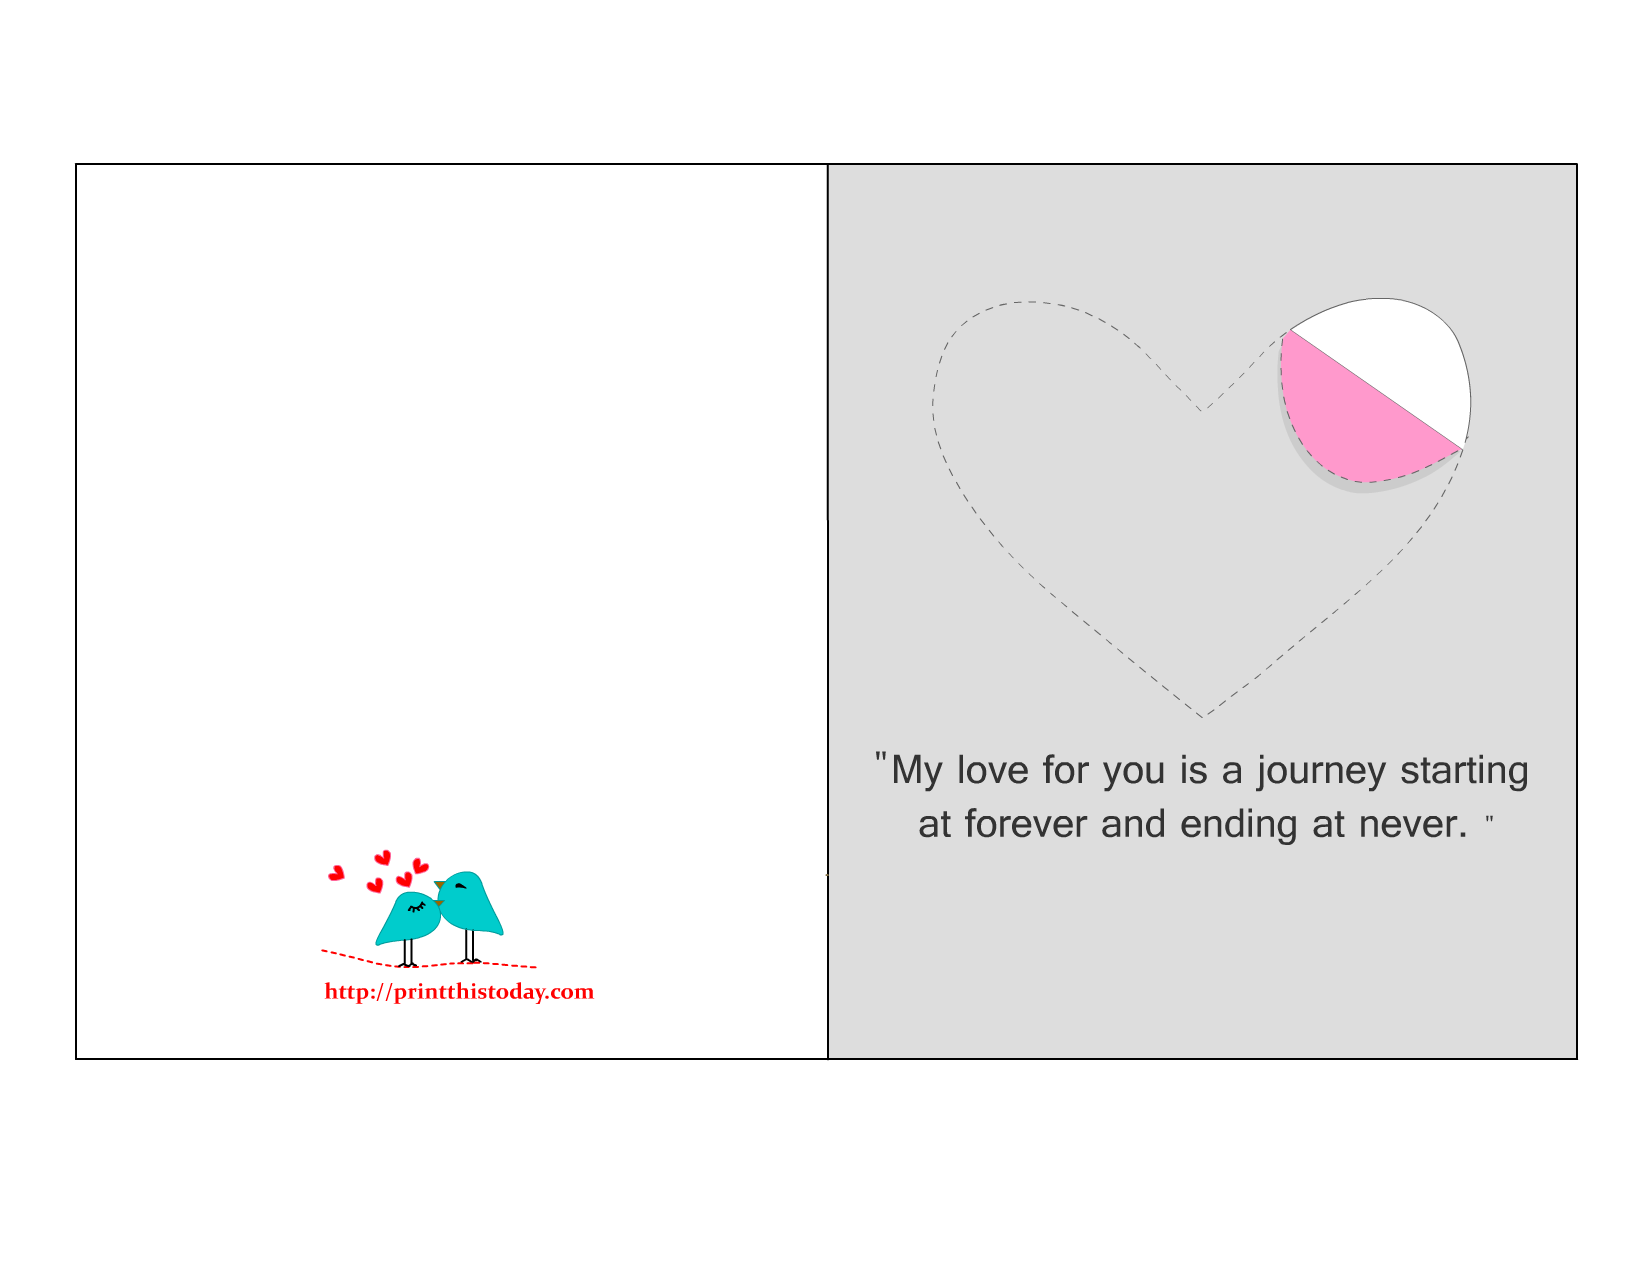 picture about Free Printable Love Cards referred to as Printable Appreciate Playing cards with Adorable, Intimate and considerate Estimates